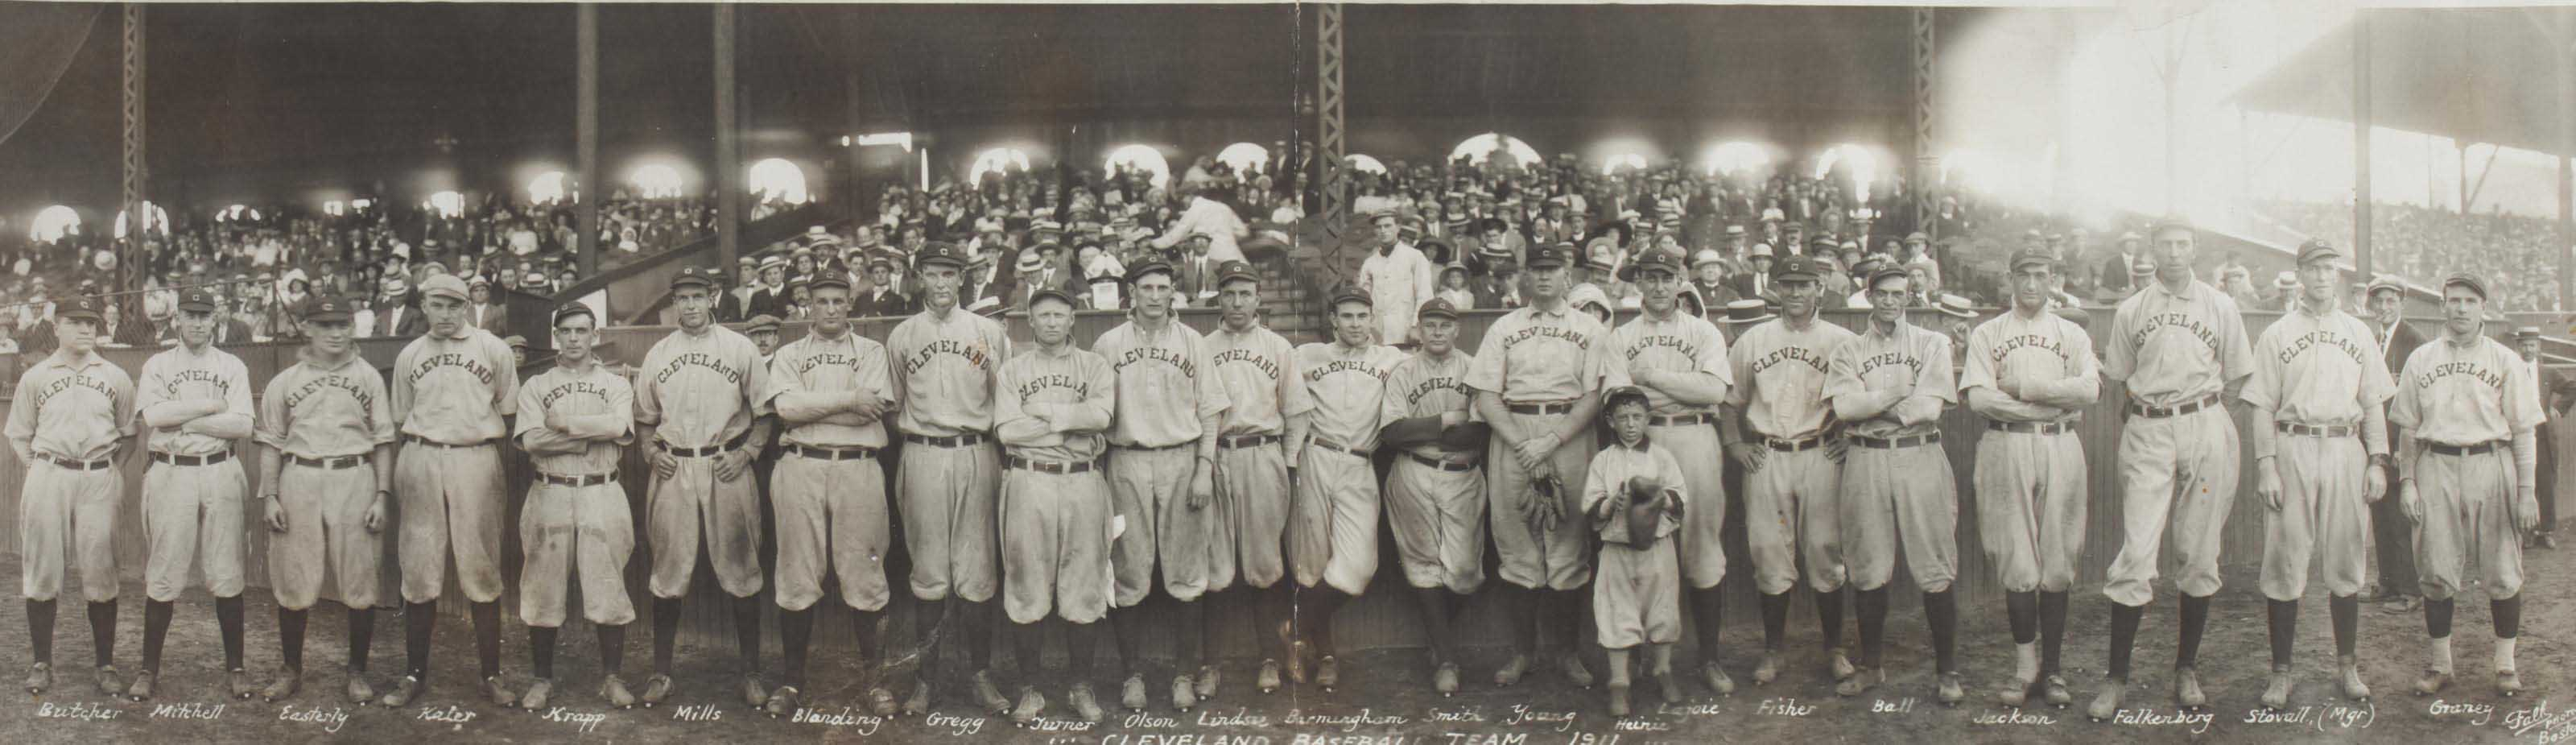 1911 CLEVELAND NAPS TEAM PANOR